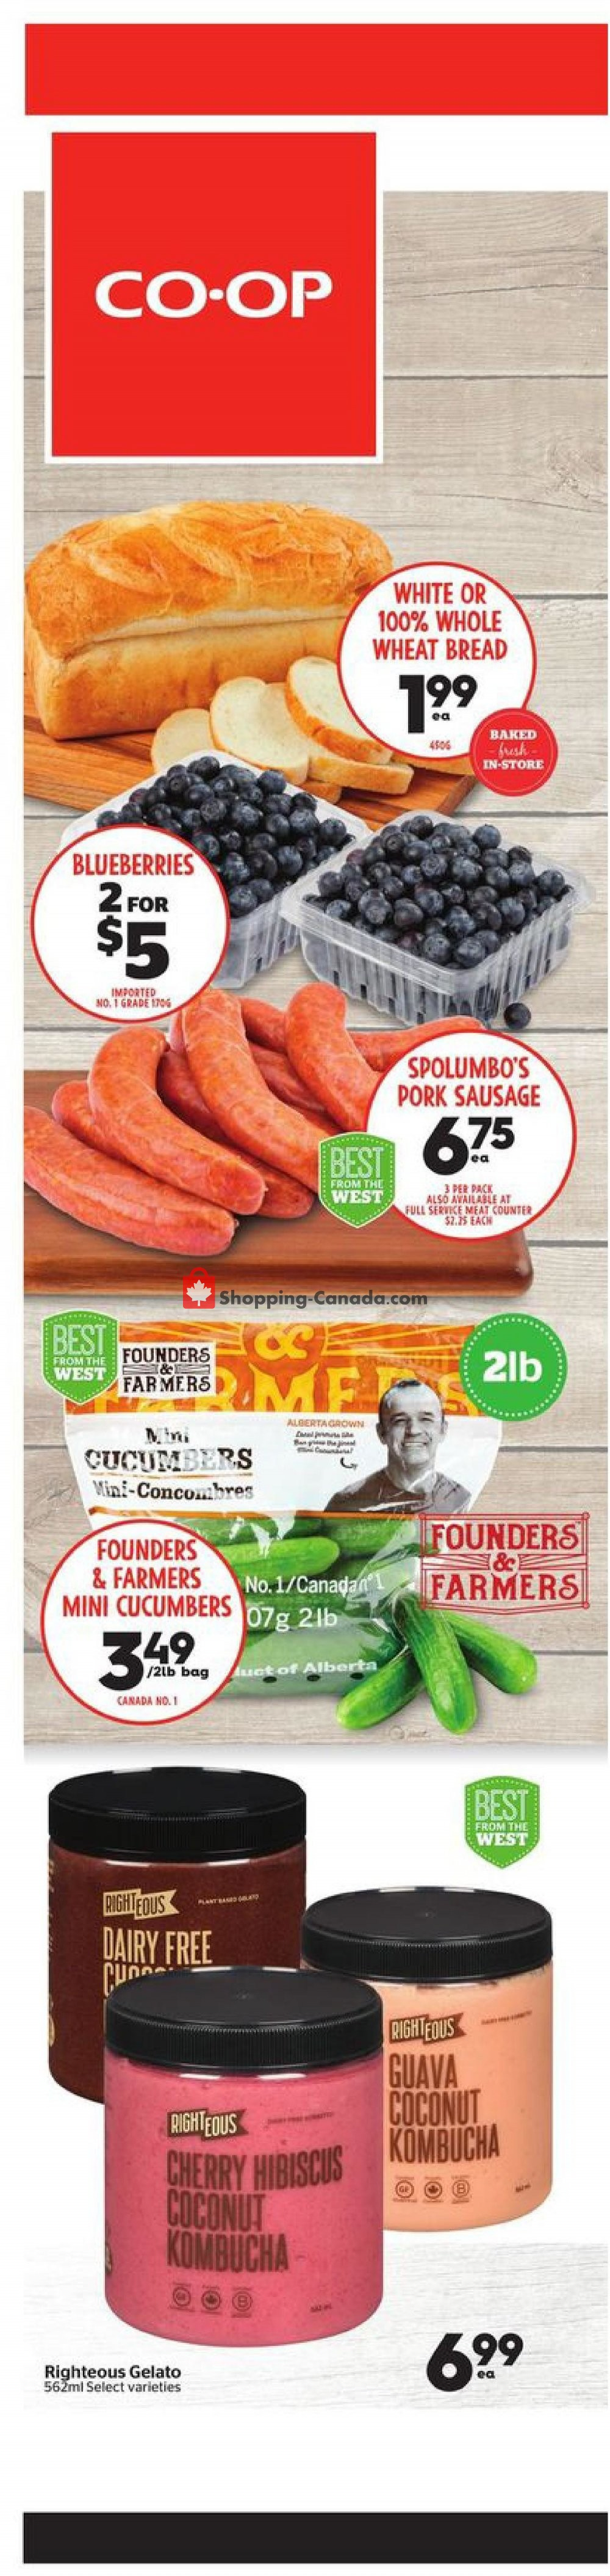 Flyer Calgary Co-op Canada - from Thursday May 28, 2020 to Wednesday June 3, 2020